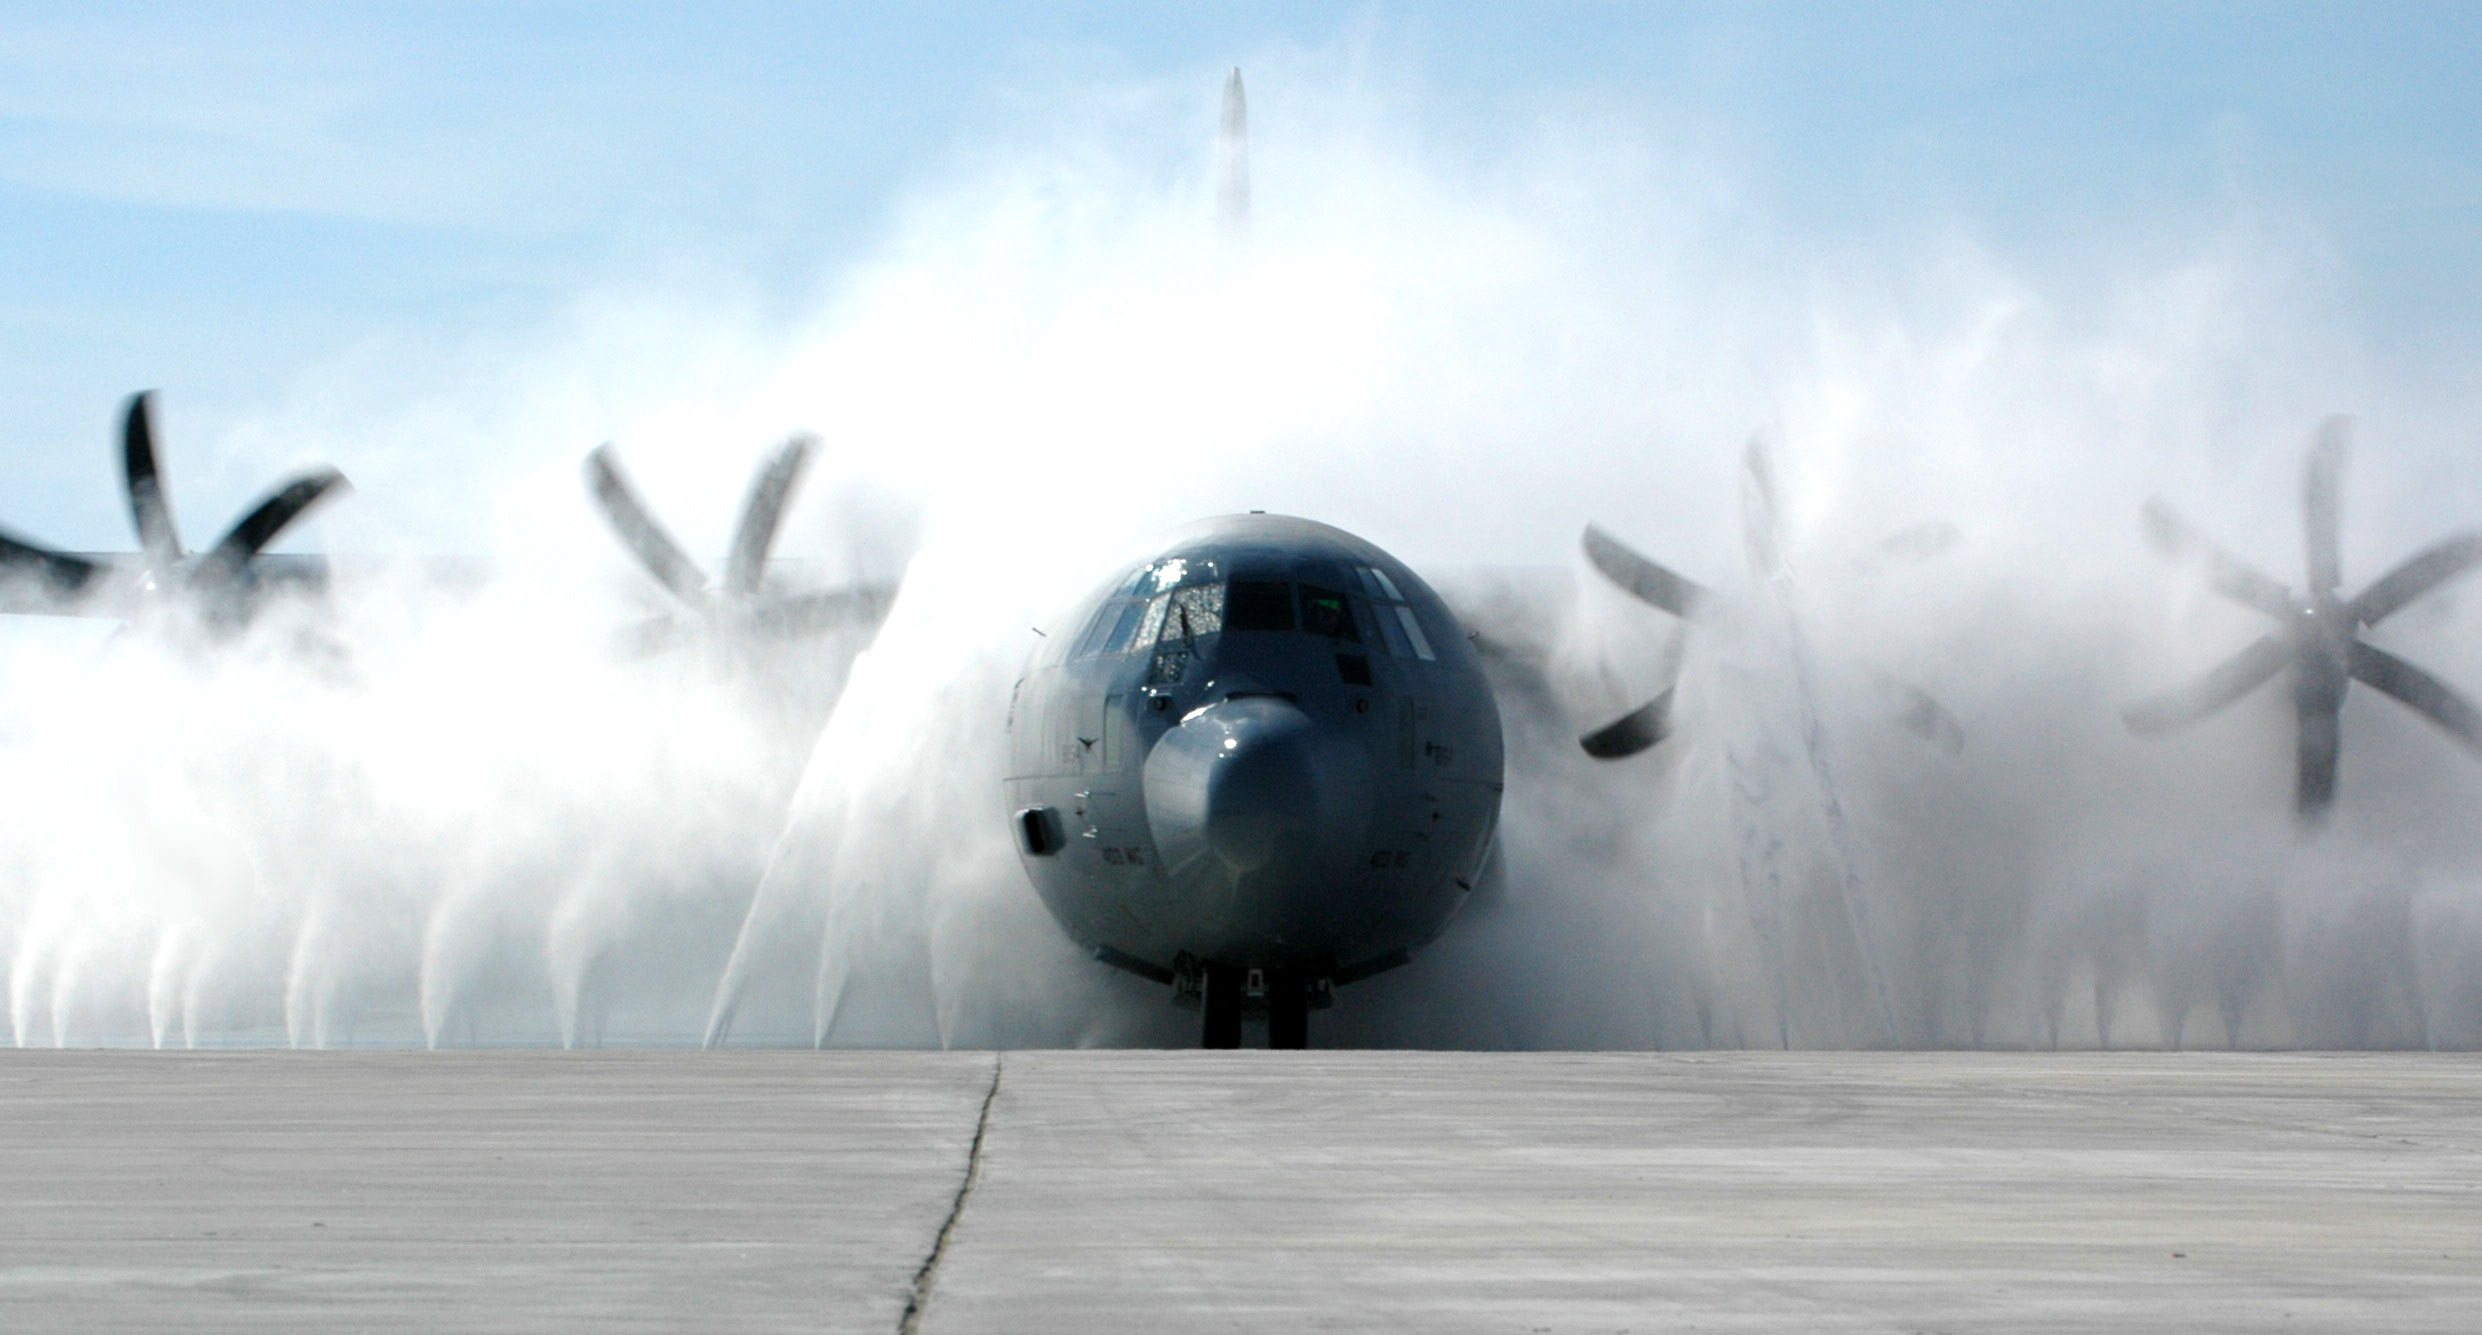 A Lockheed C-130J Hercules aircraft undergoes routine cleaning